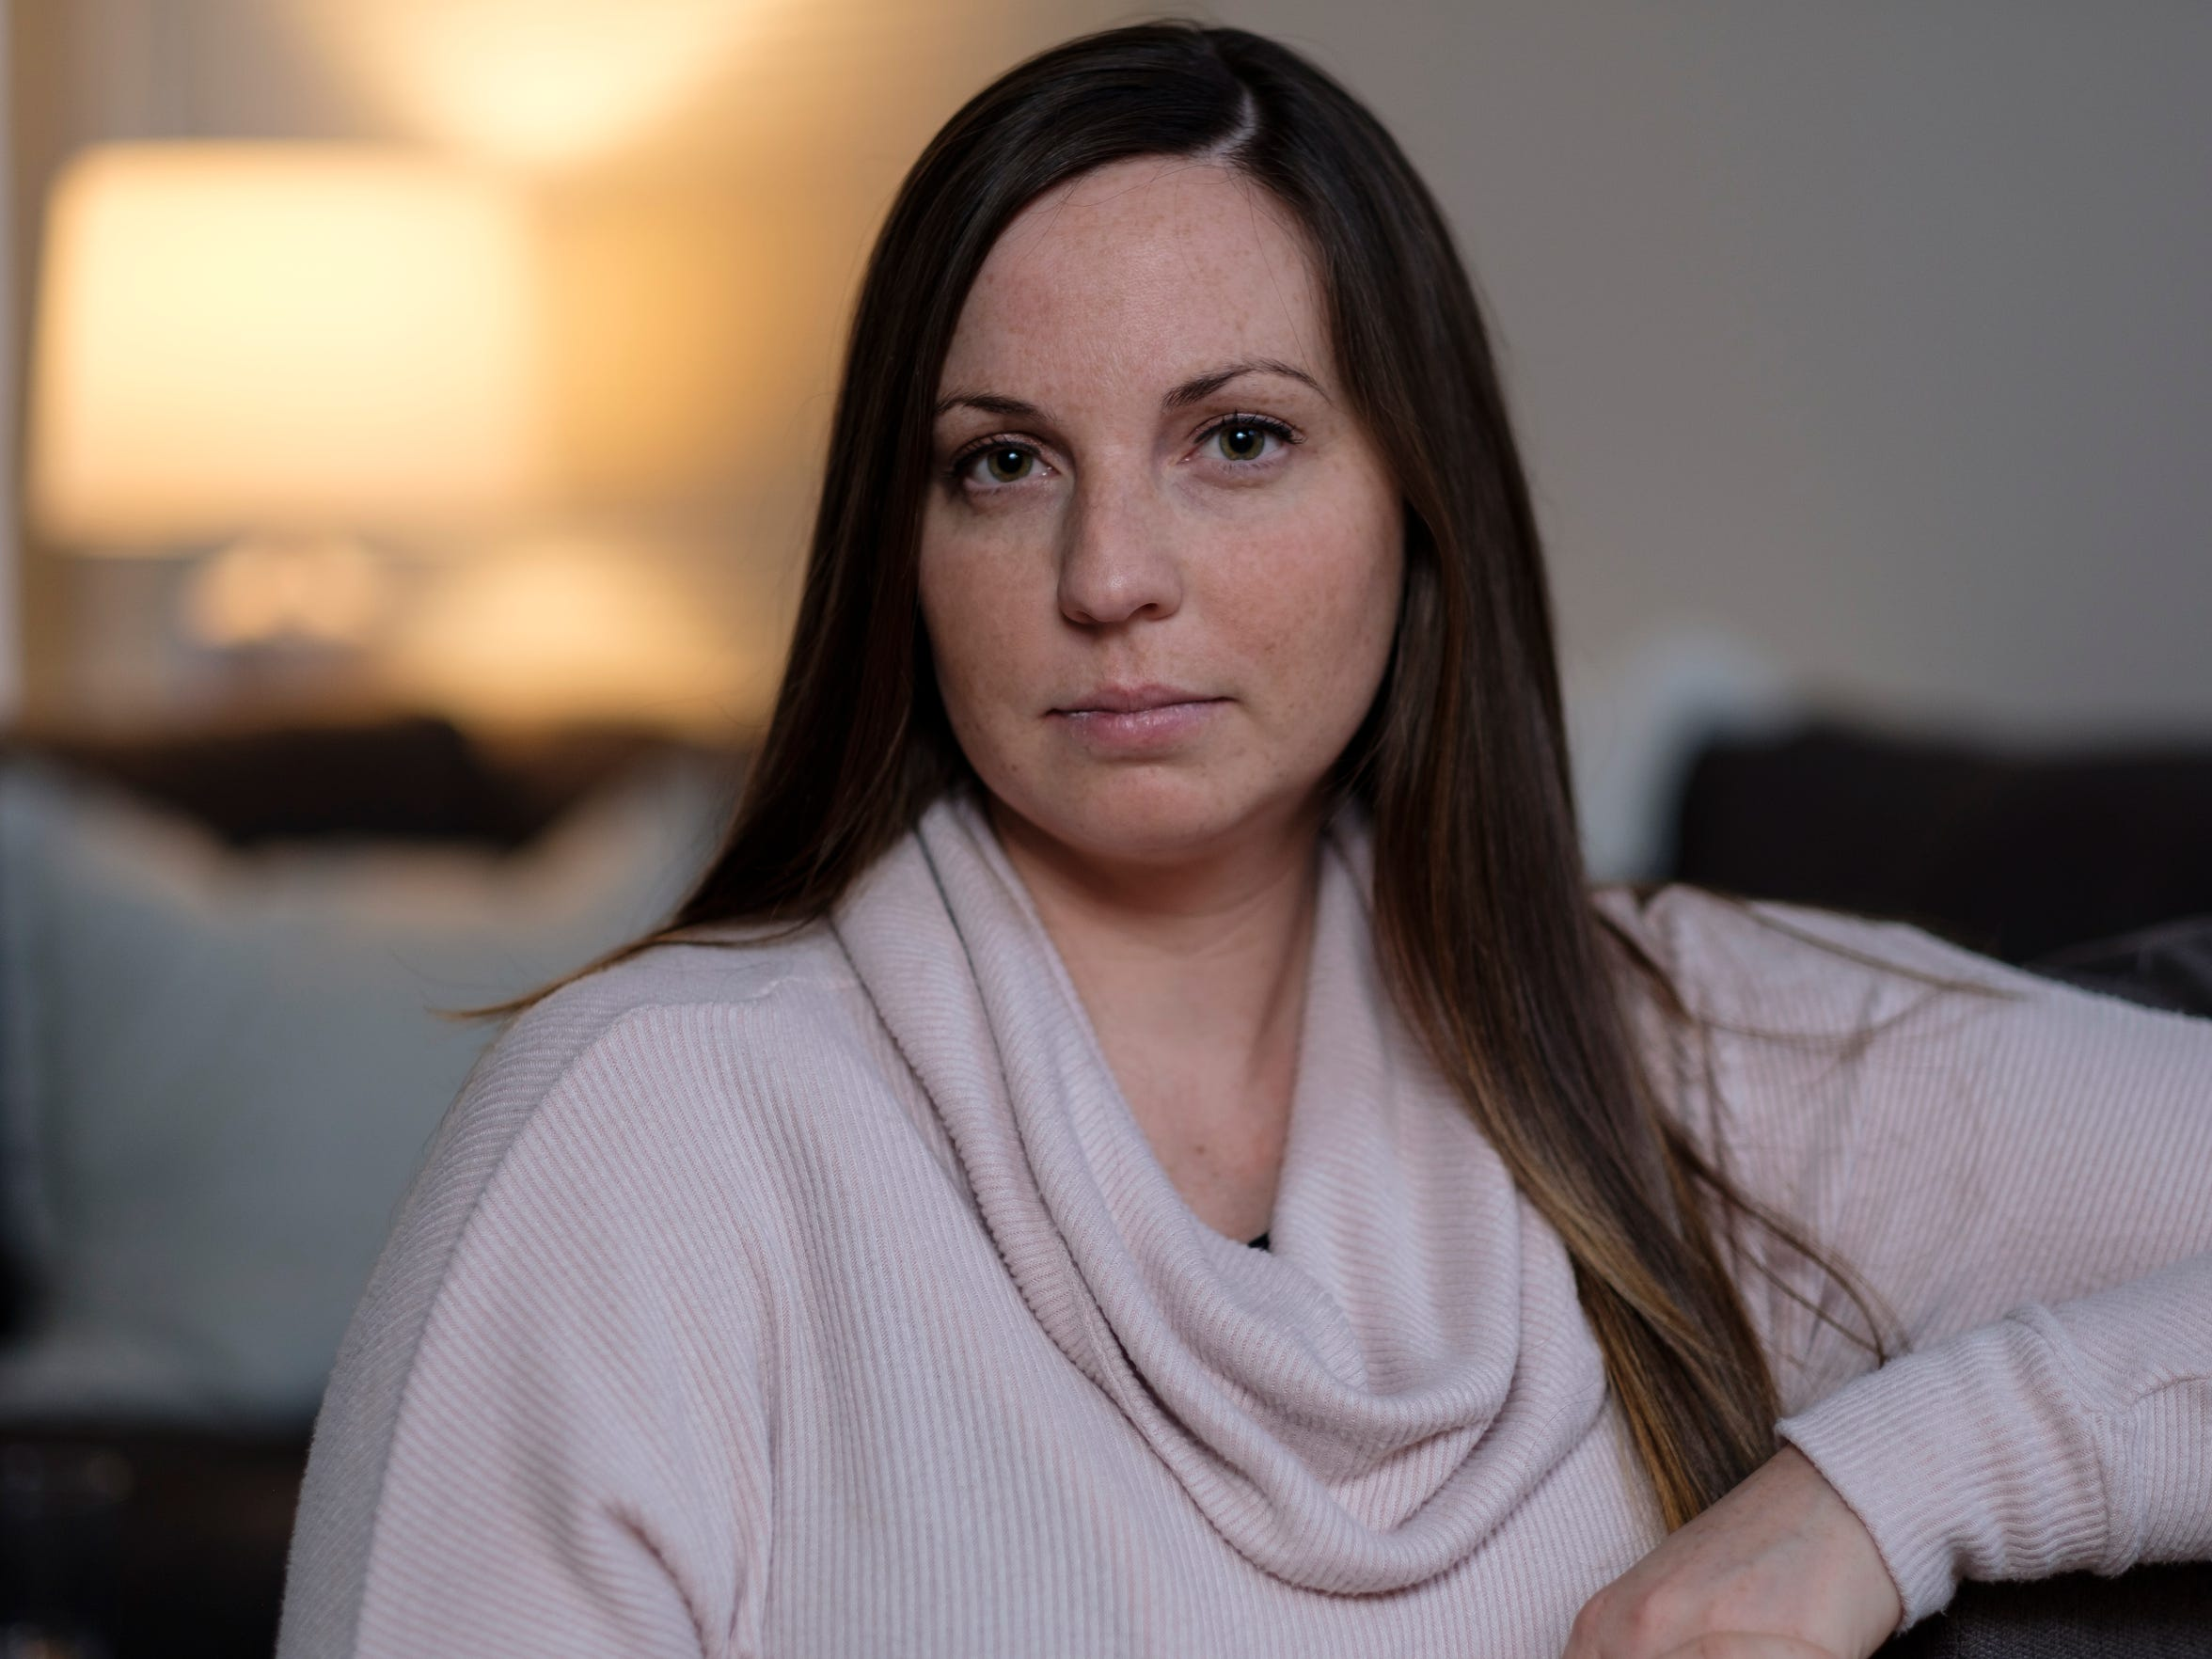 In 2004, Brianne Randall-Gay, then a 16-year-old soccer and tennis player, told her parents Nassar treated her back pain by touching her bare breast and putting his hand between her legs. Her parents told the Meridian Township Police, who accepted Nassar's response that it was a legitimate treatment.